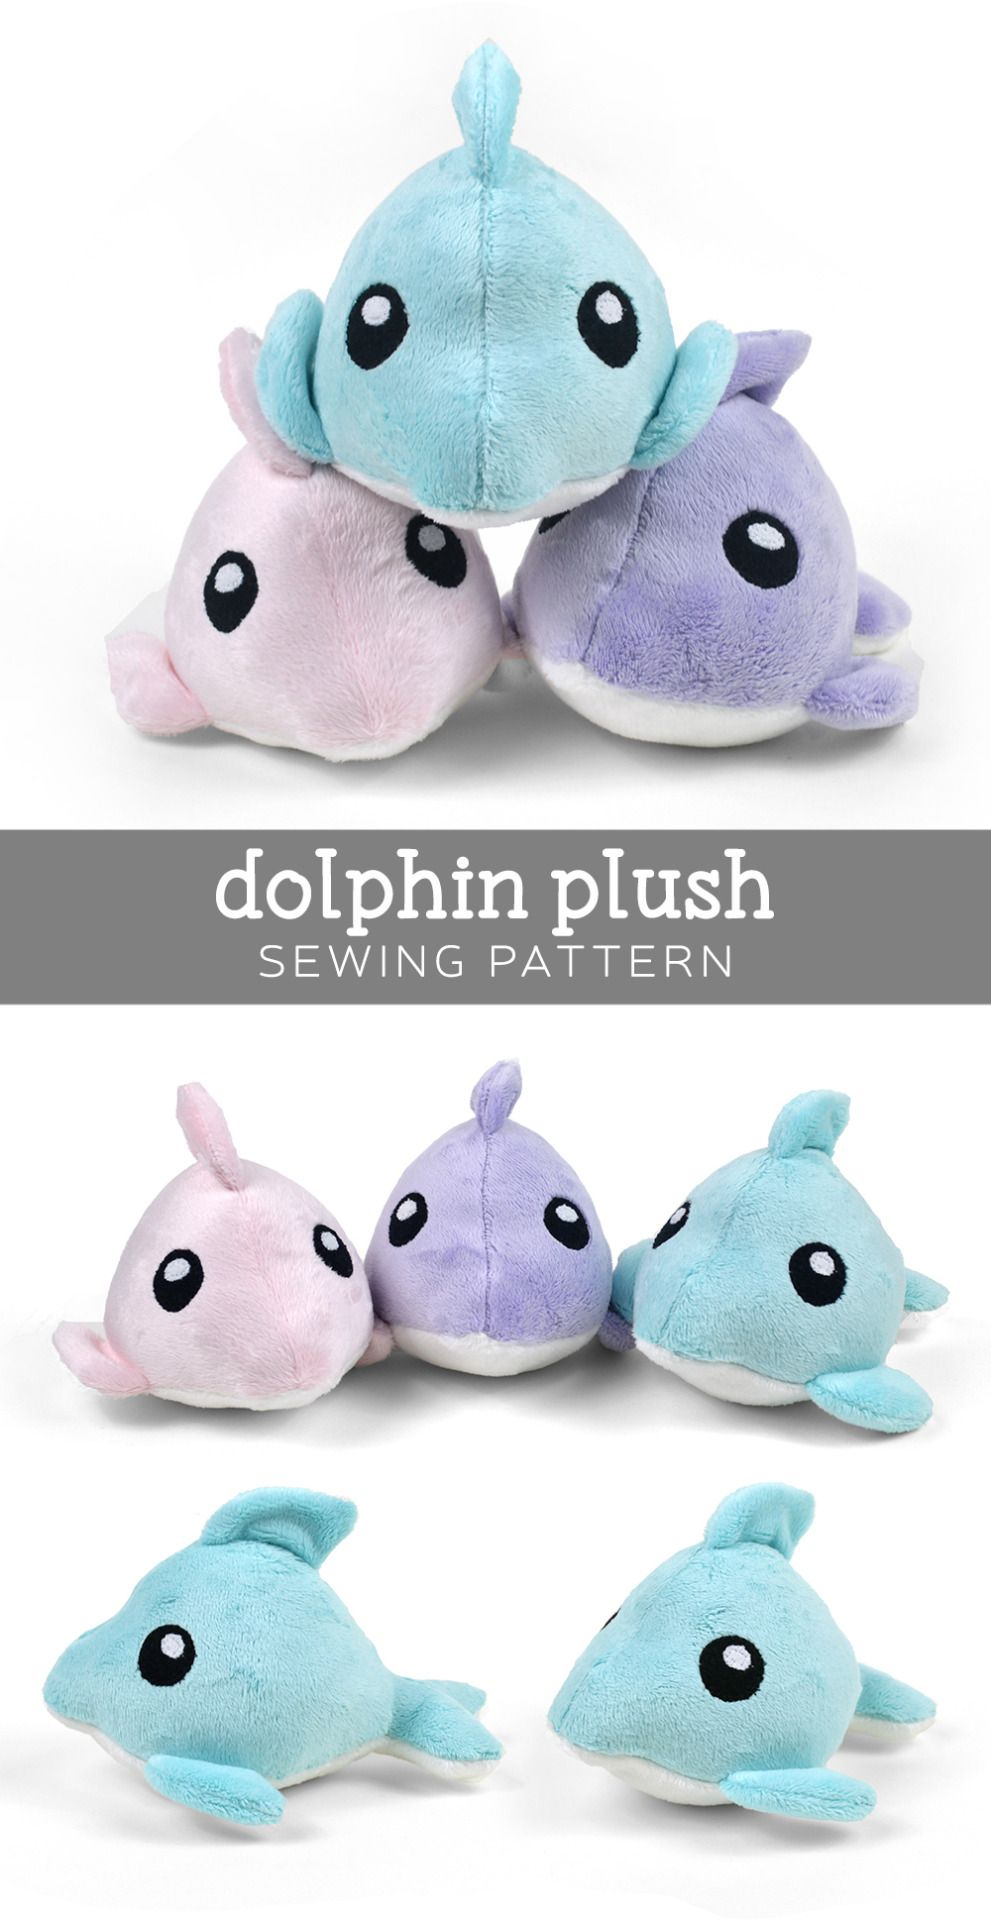 Pin by kaitlyn lee on sewing pinterest plushies sewing sewdesune free sewing pattern dolphin plush i wanted to whip up something small and simple that would be easy on hand sewers out there jeuxipadfo Images